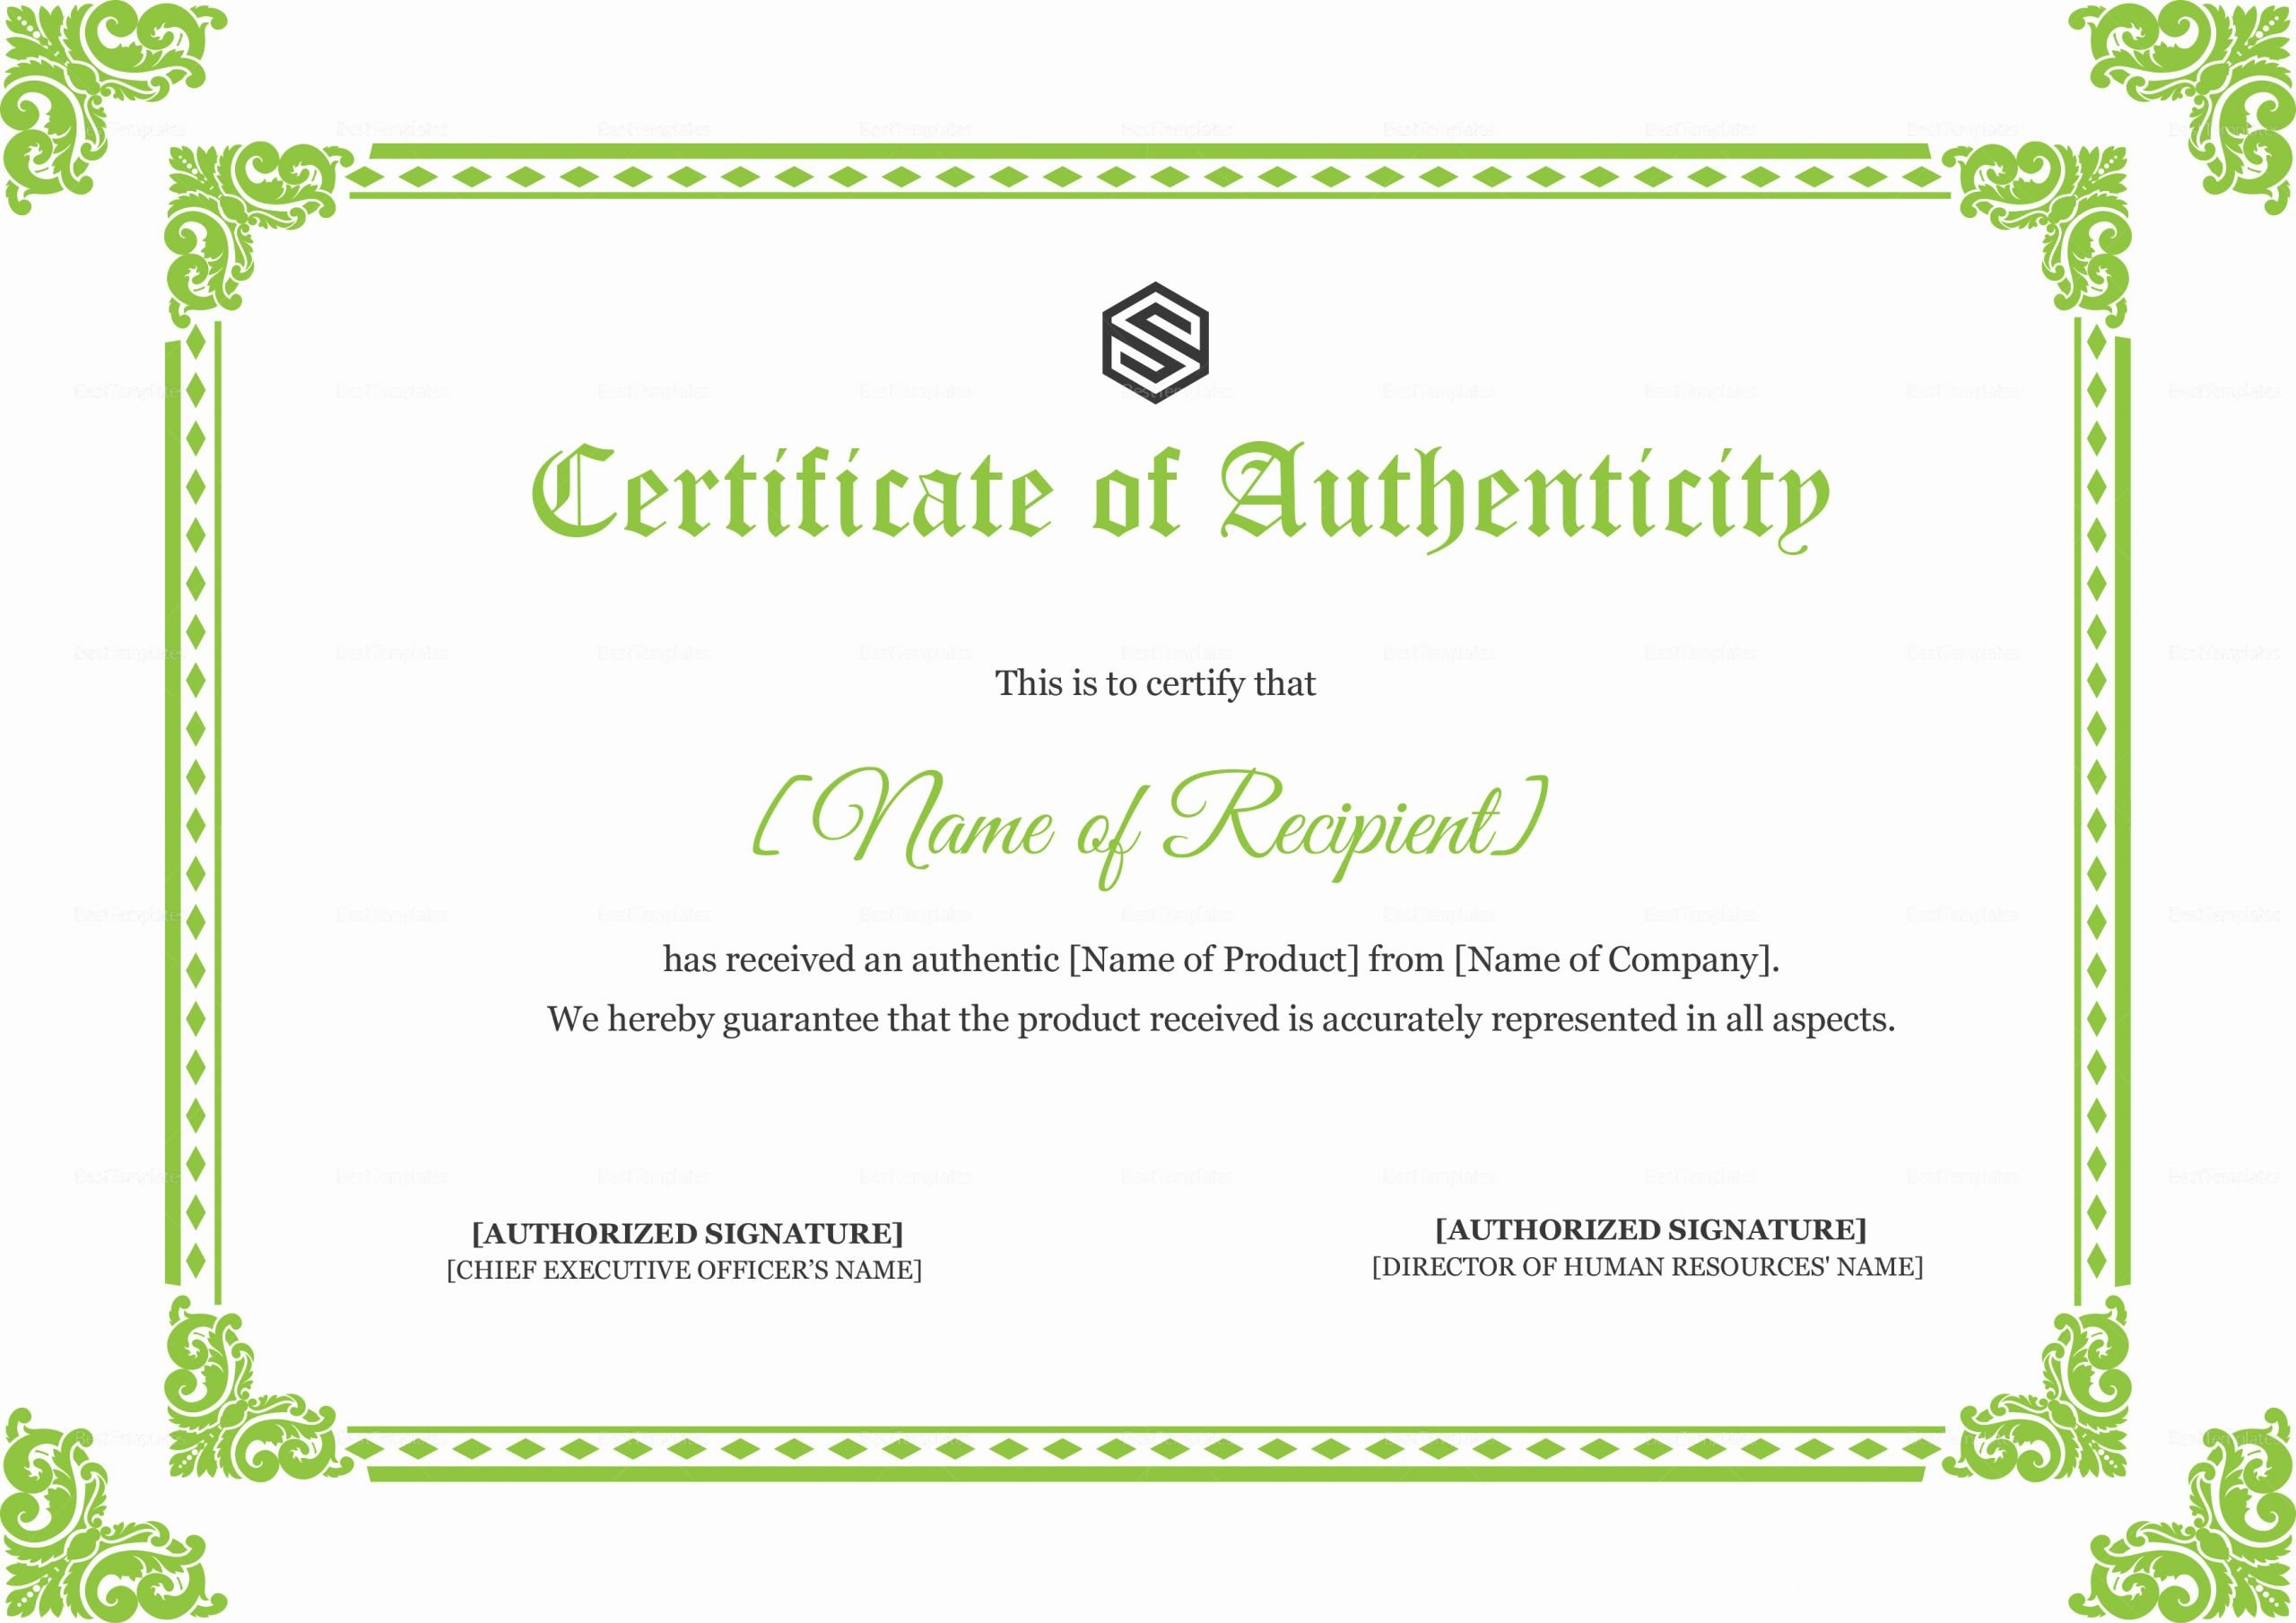 Free Printable Certificate Of Authenticity Templates Lovely Certificate Of Authenticity Design Template In Psd Word